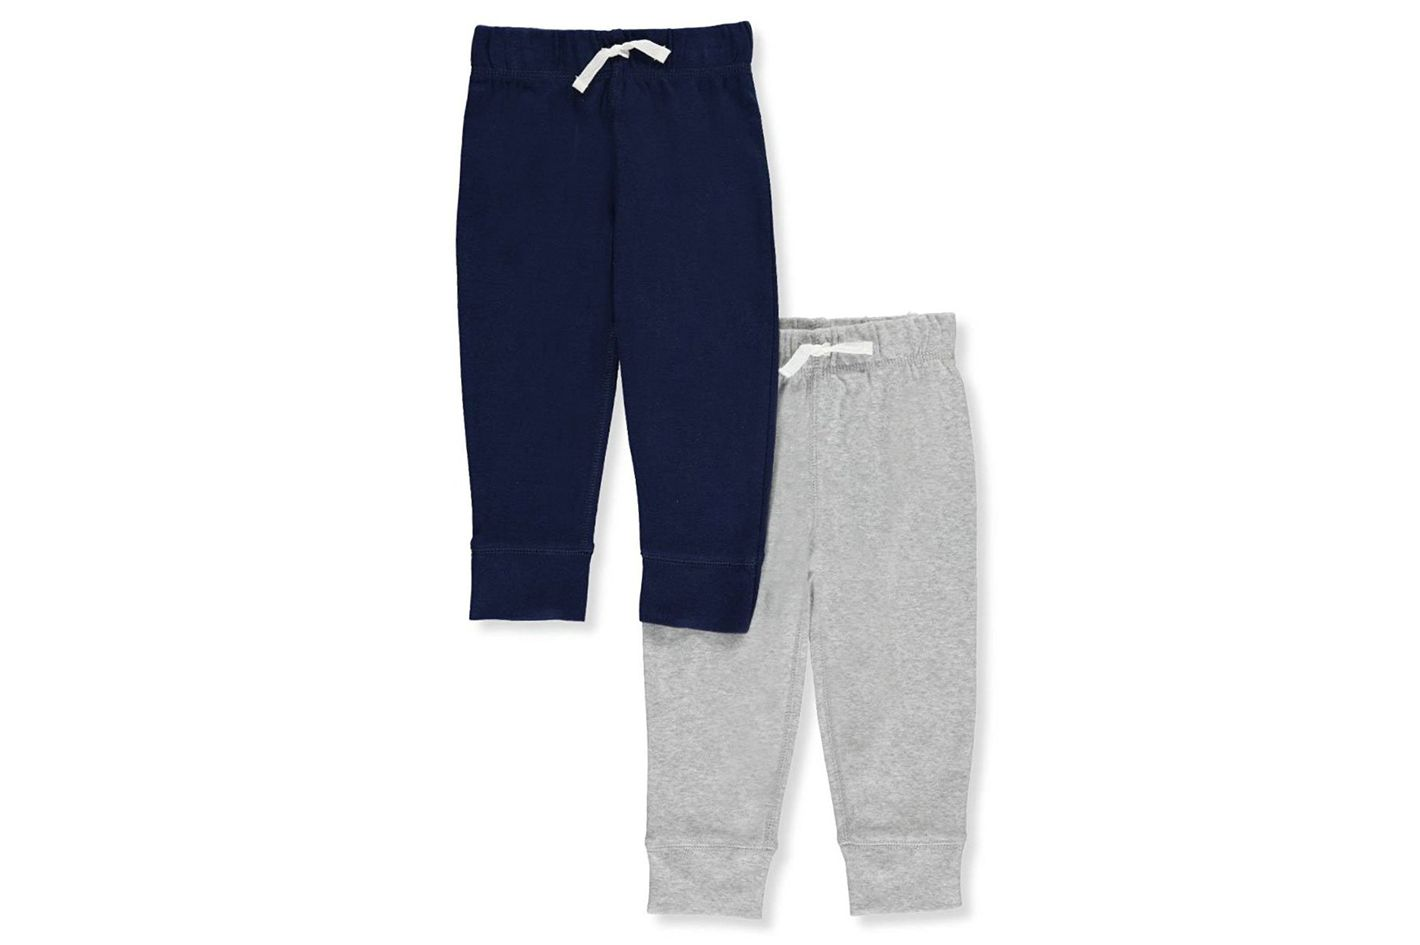 Carter's Pants, 2-Pack